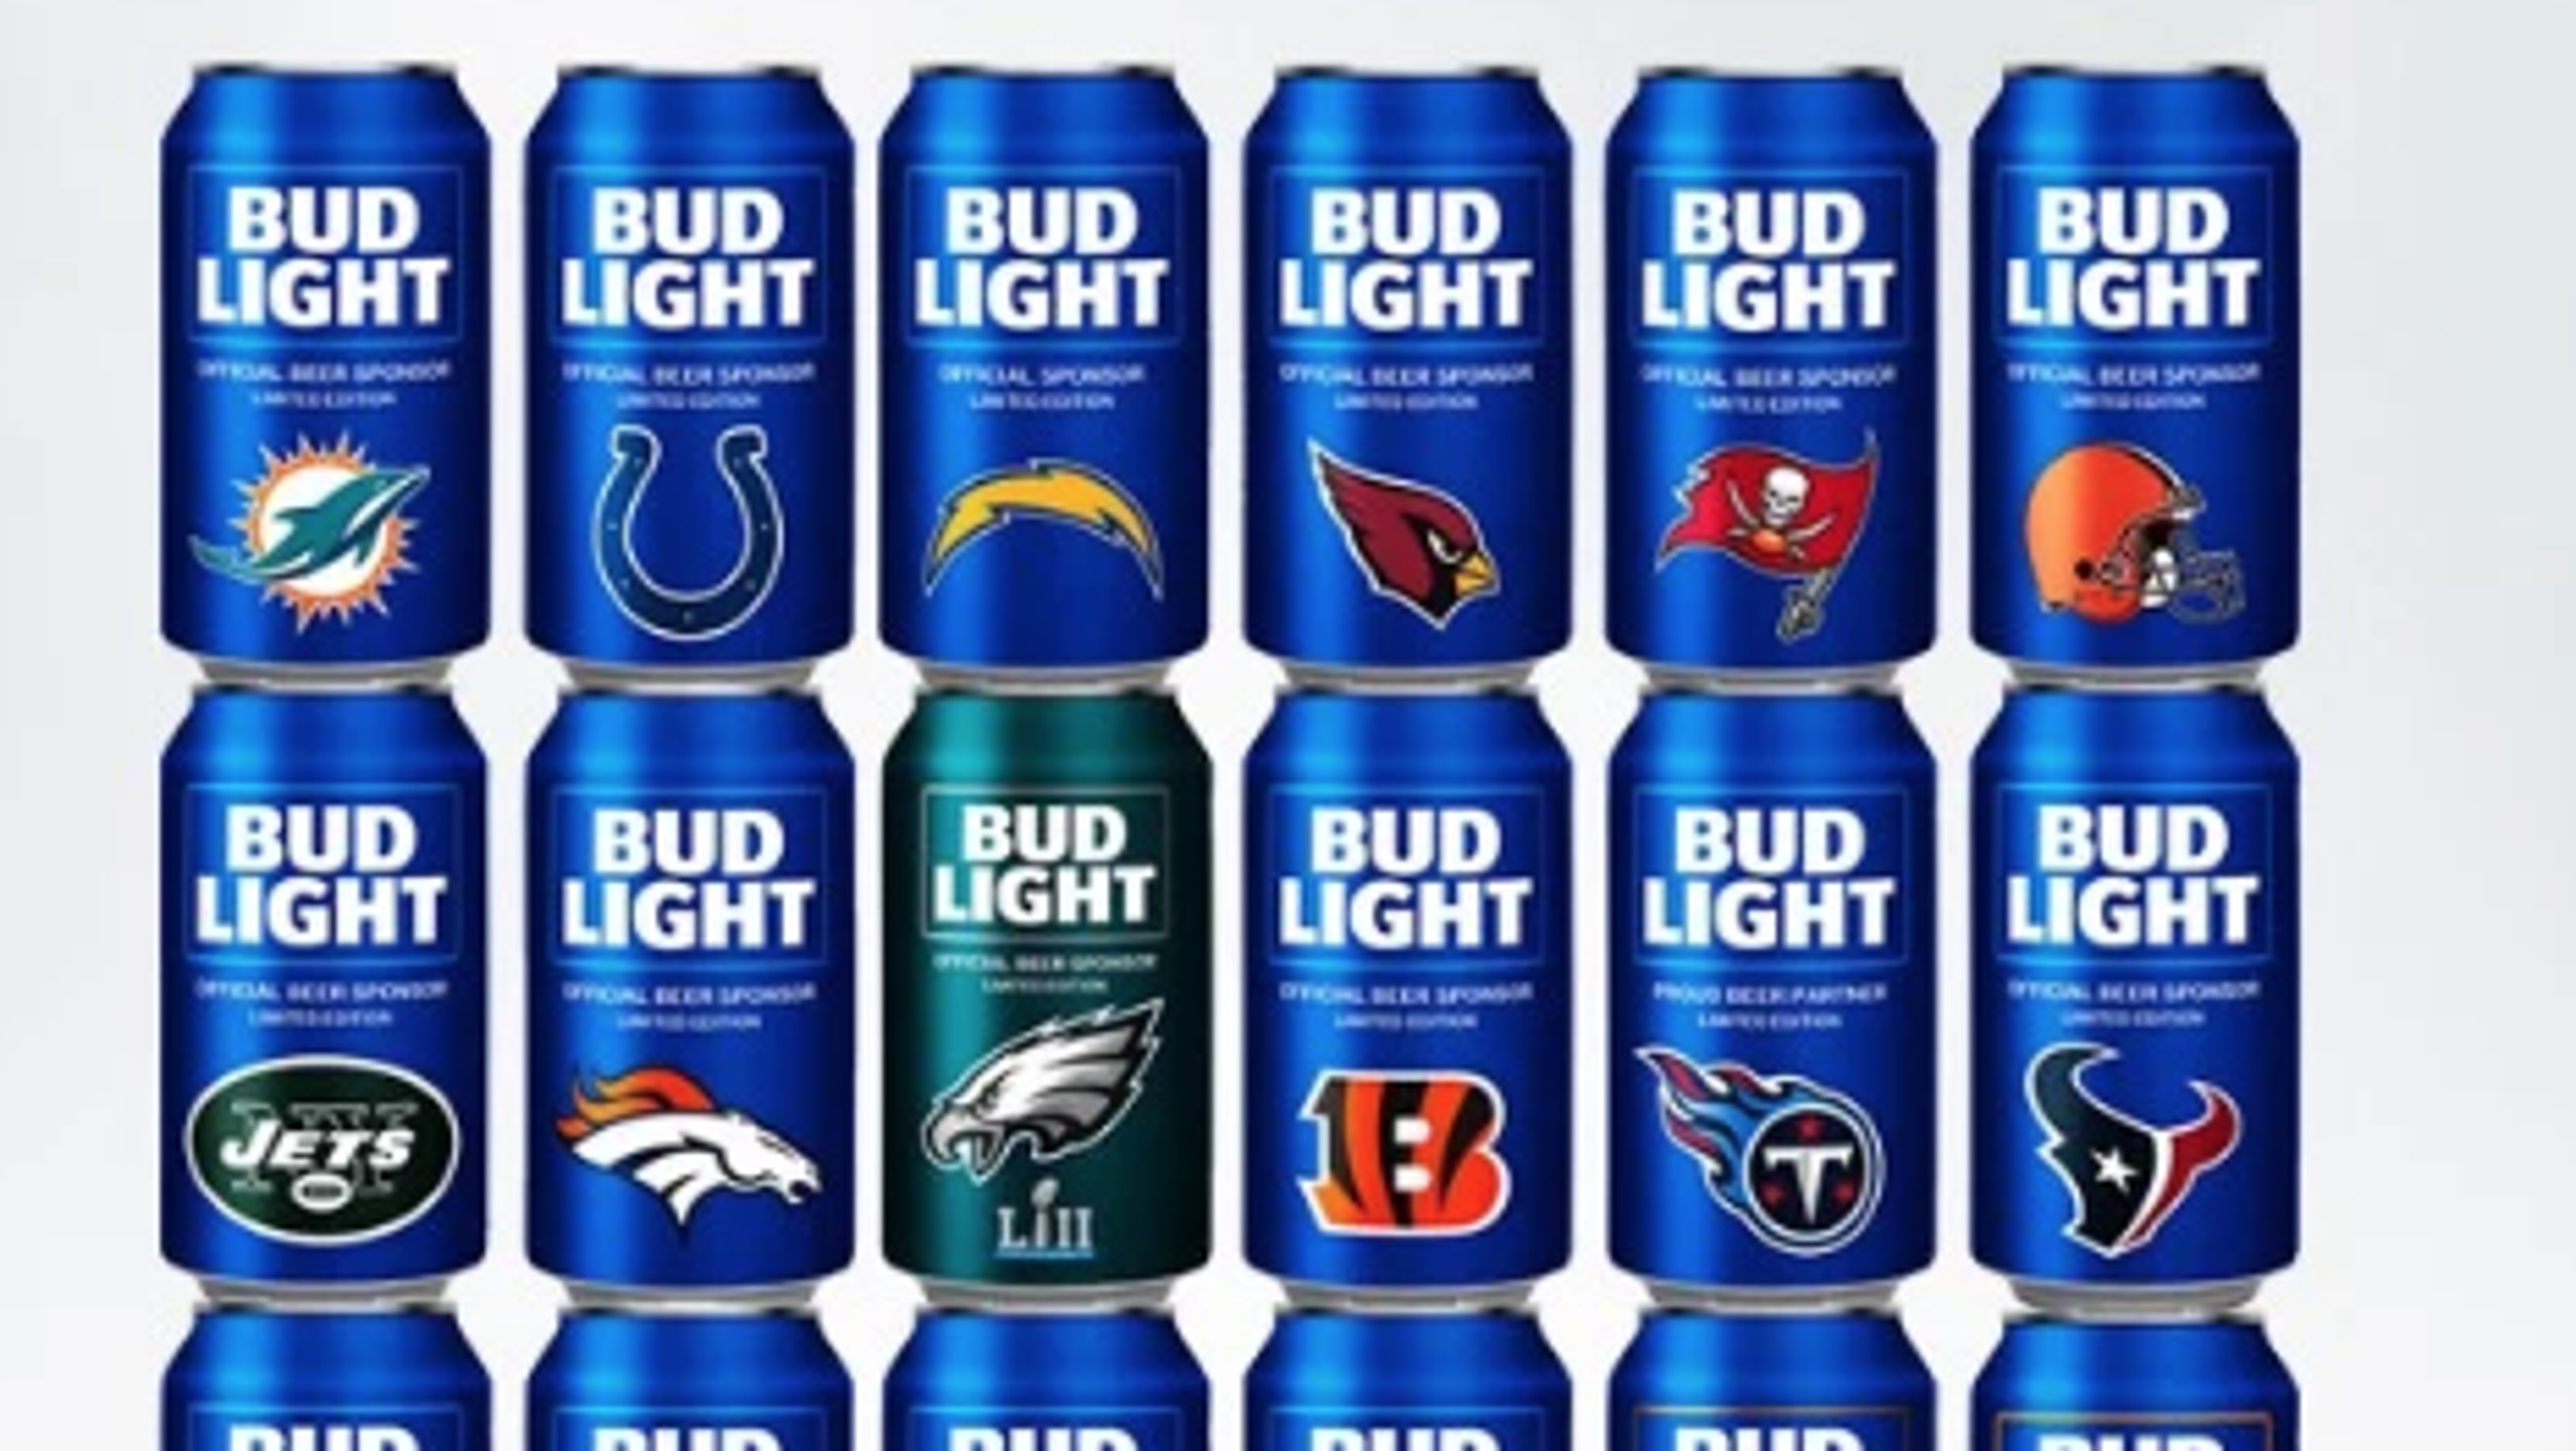 e2452487e4c 2018 NFL Bud Light Cans  28 teams have special beer cans for season